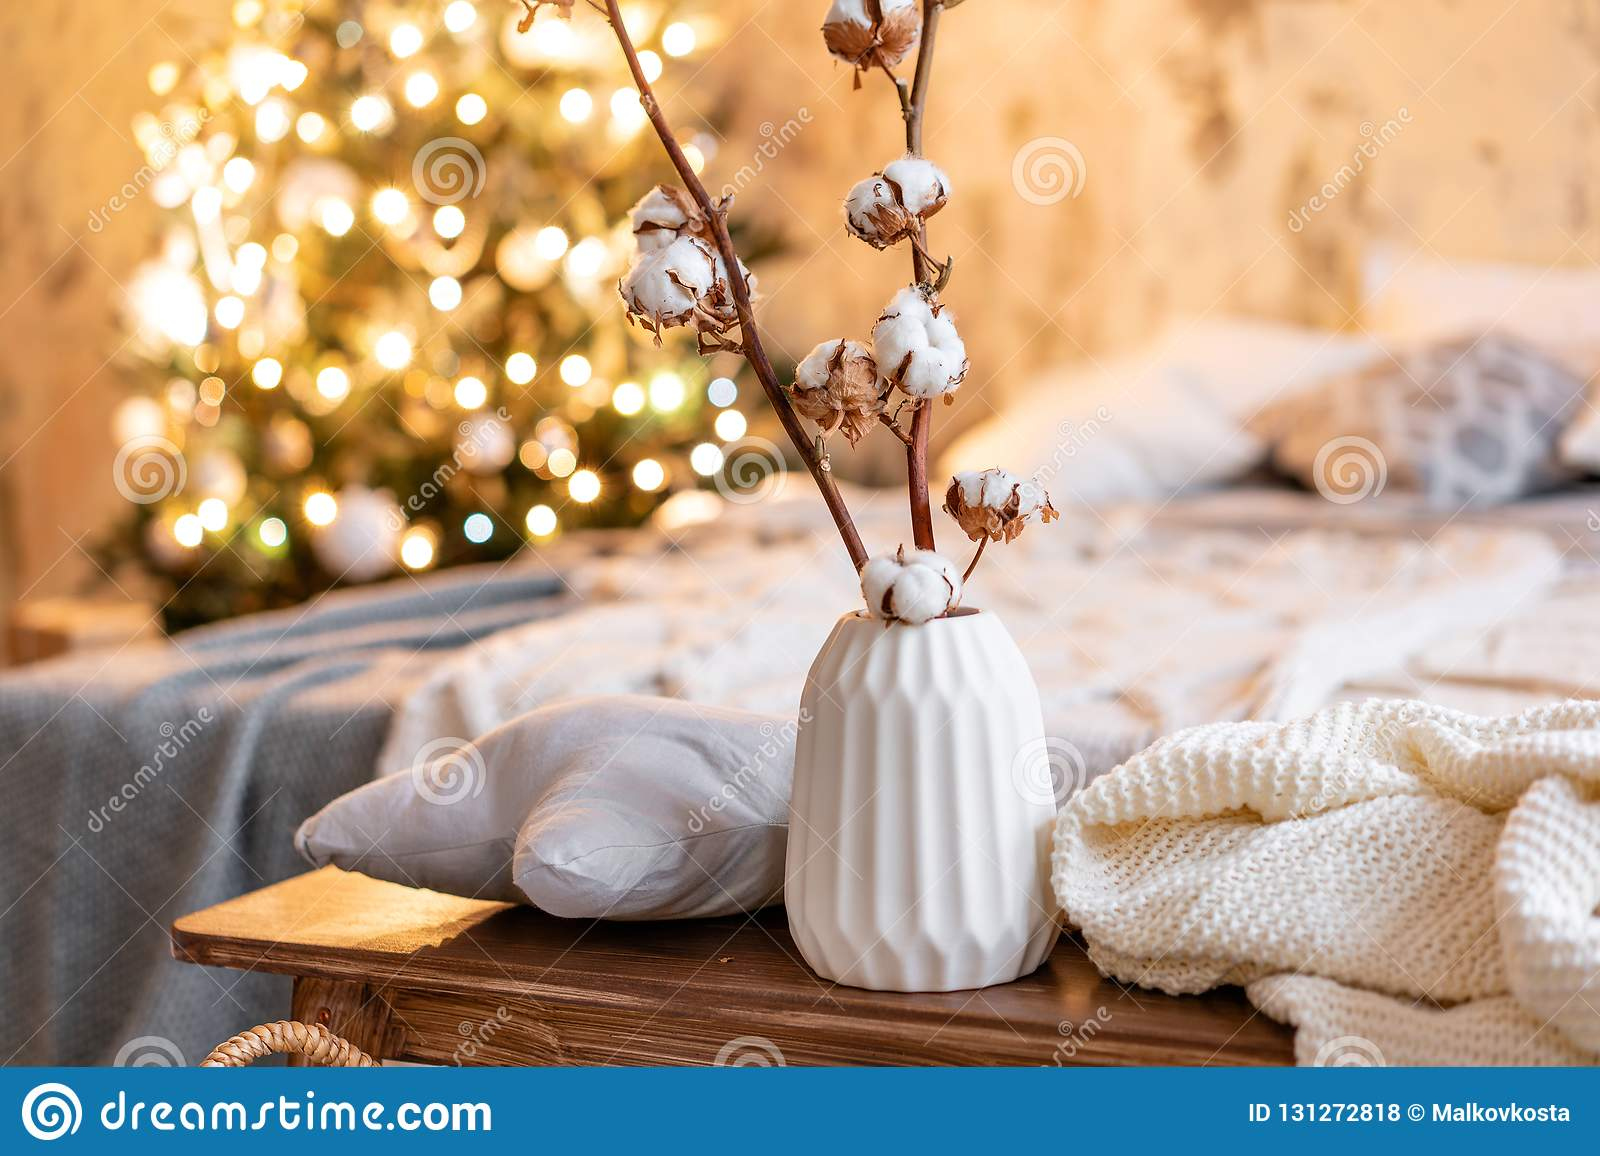 Vase With Cotton Branches Loft Style Apartments Christmas Tree Bed In The Bedroom High Large Windows Stock Photo Image Of Loft Festive 131272818